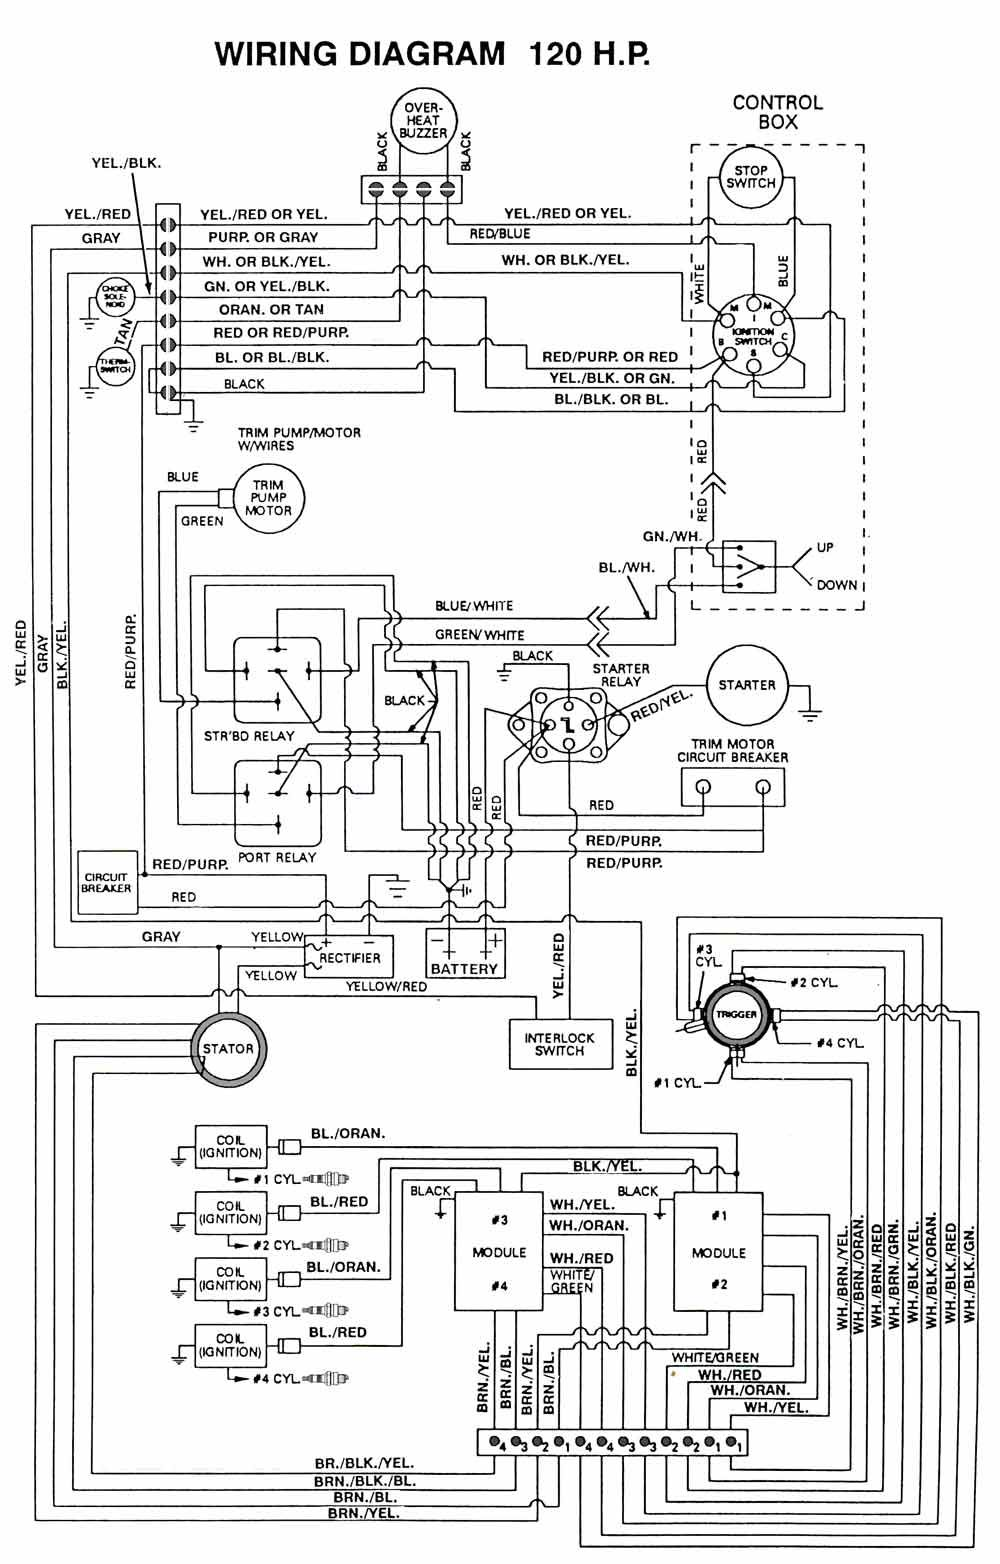 Diagram 70 Hp Force Wiring Diagram Full Version Hd Quality Wiring Diagram Diagramsdaley Americanpubgaleon It